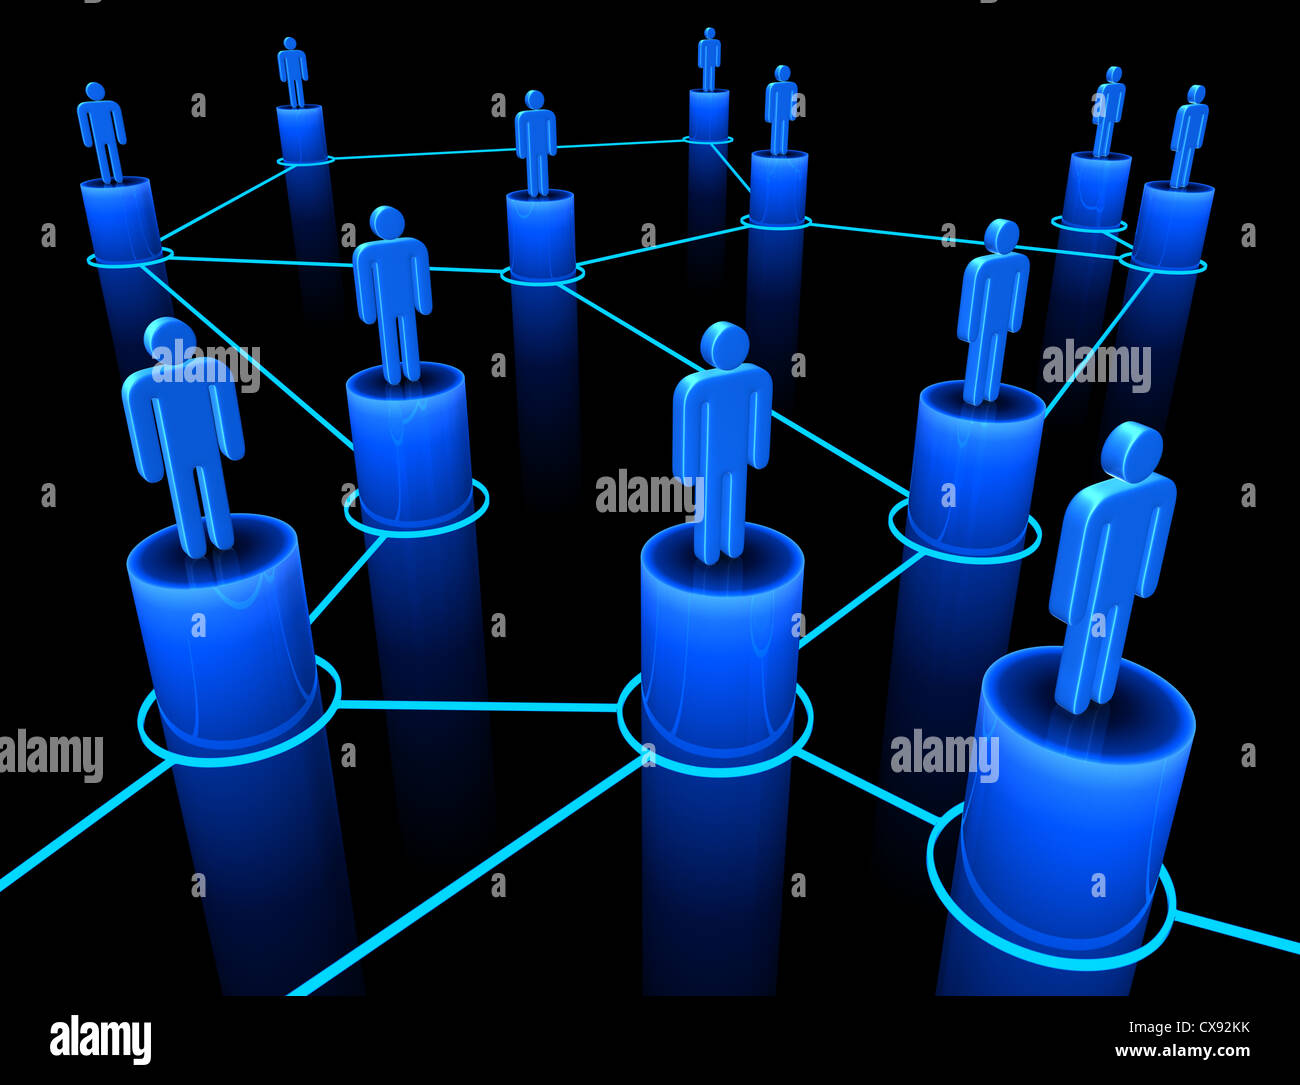 People interconnected on the concept of team, union and communication. Stock Photo